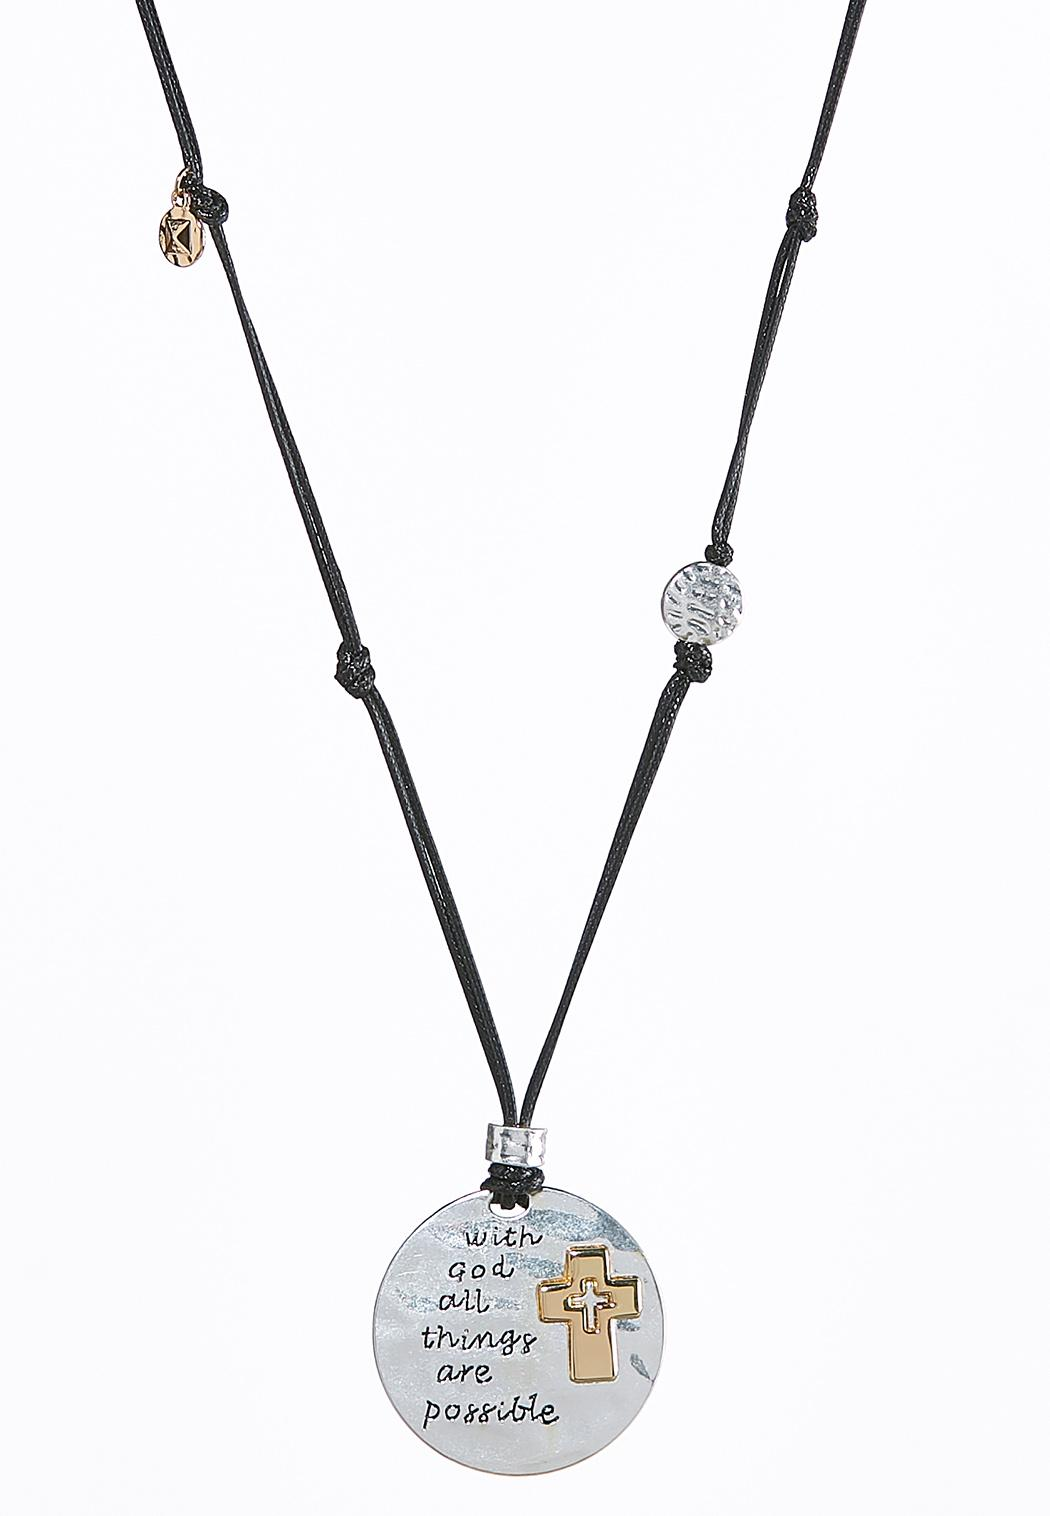 Inspirational Two-Toned Cord Necklace